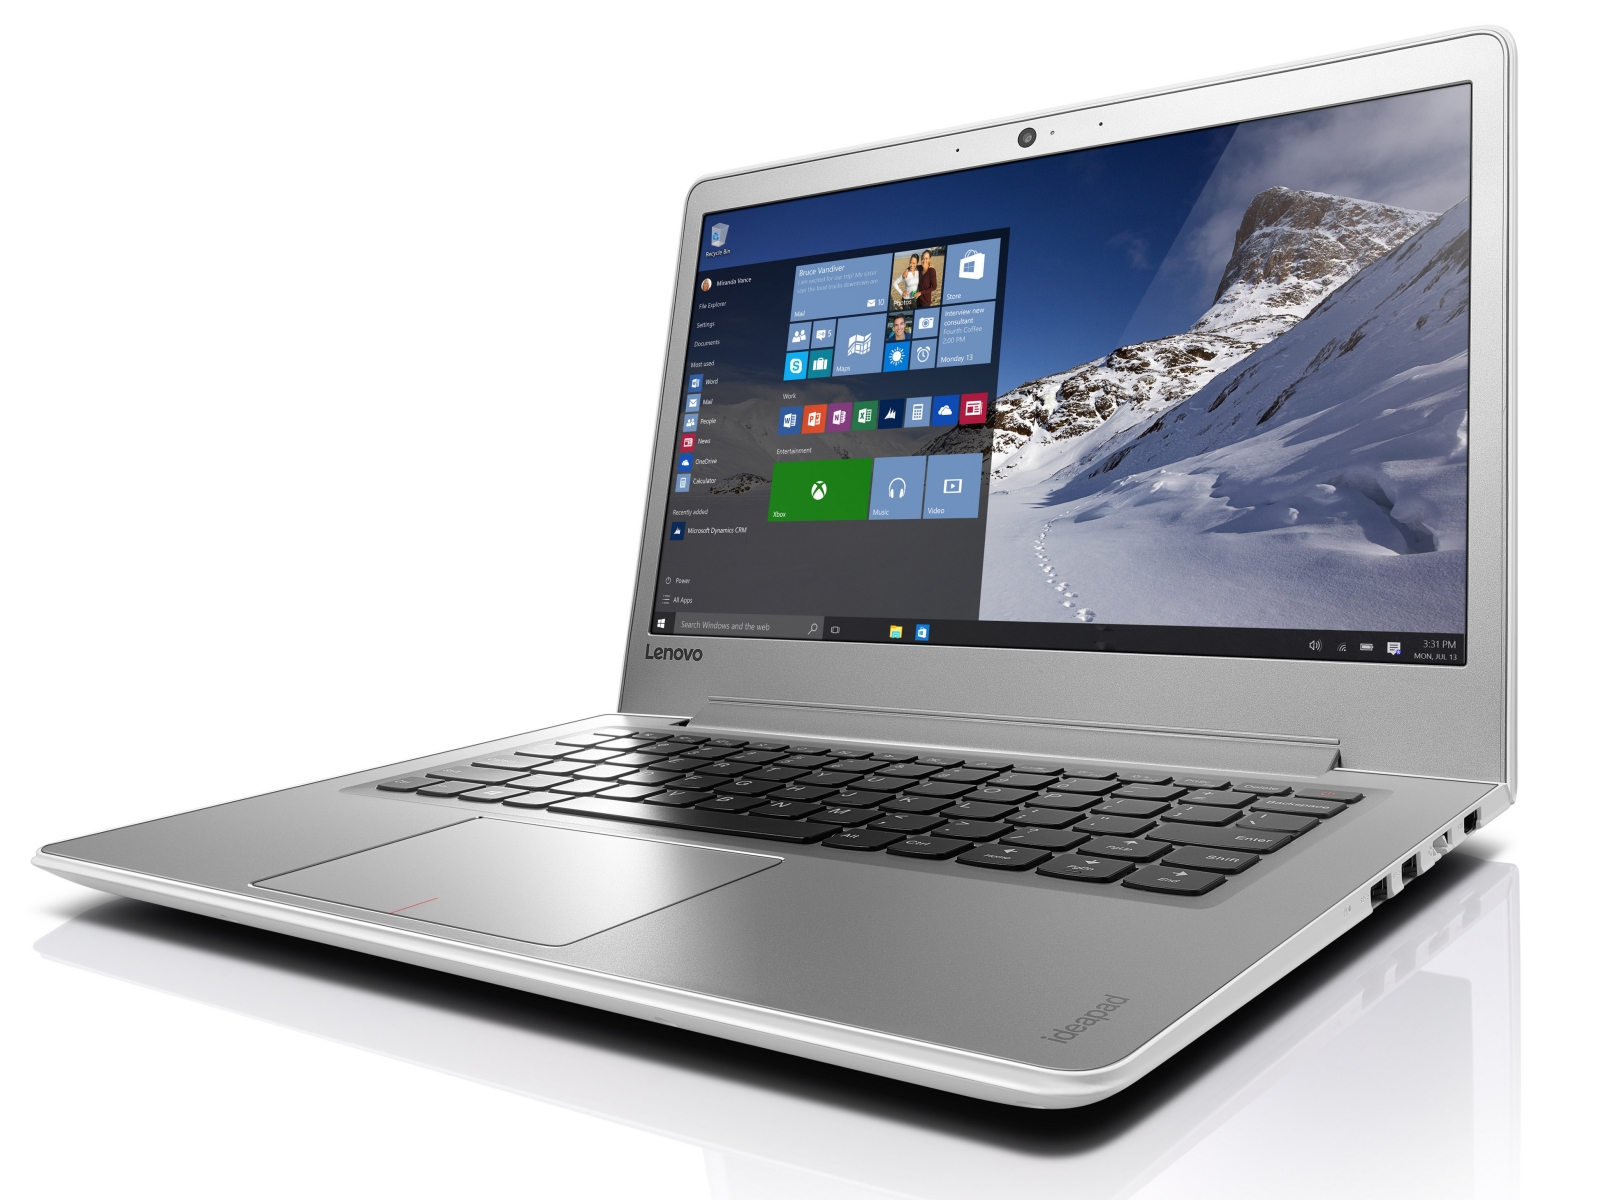 Download Lenovo Ideapad 510S-14IKB Drivers For Windows 10 | Lenovo